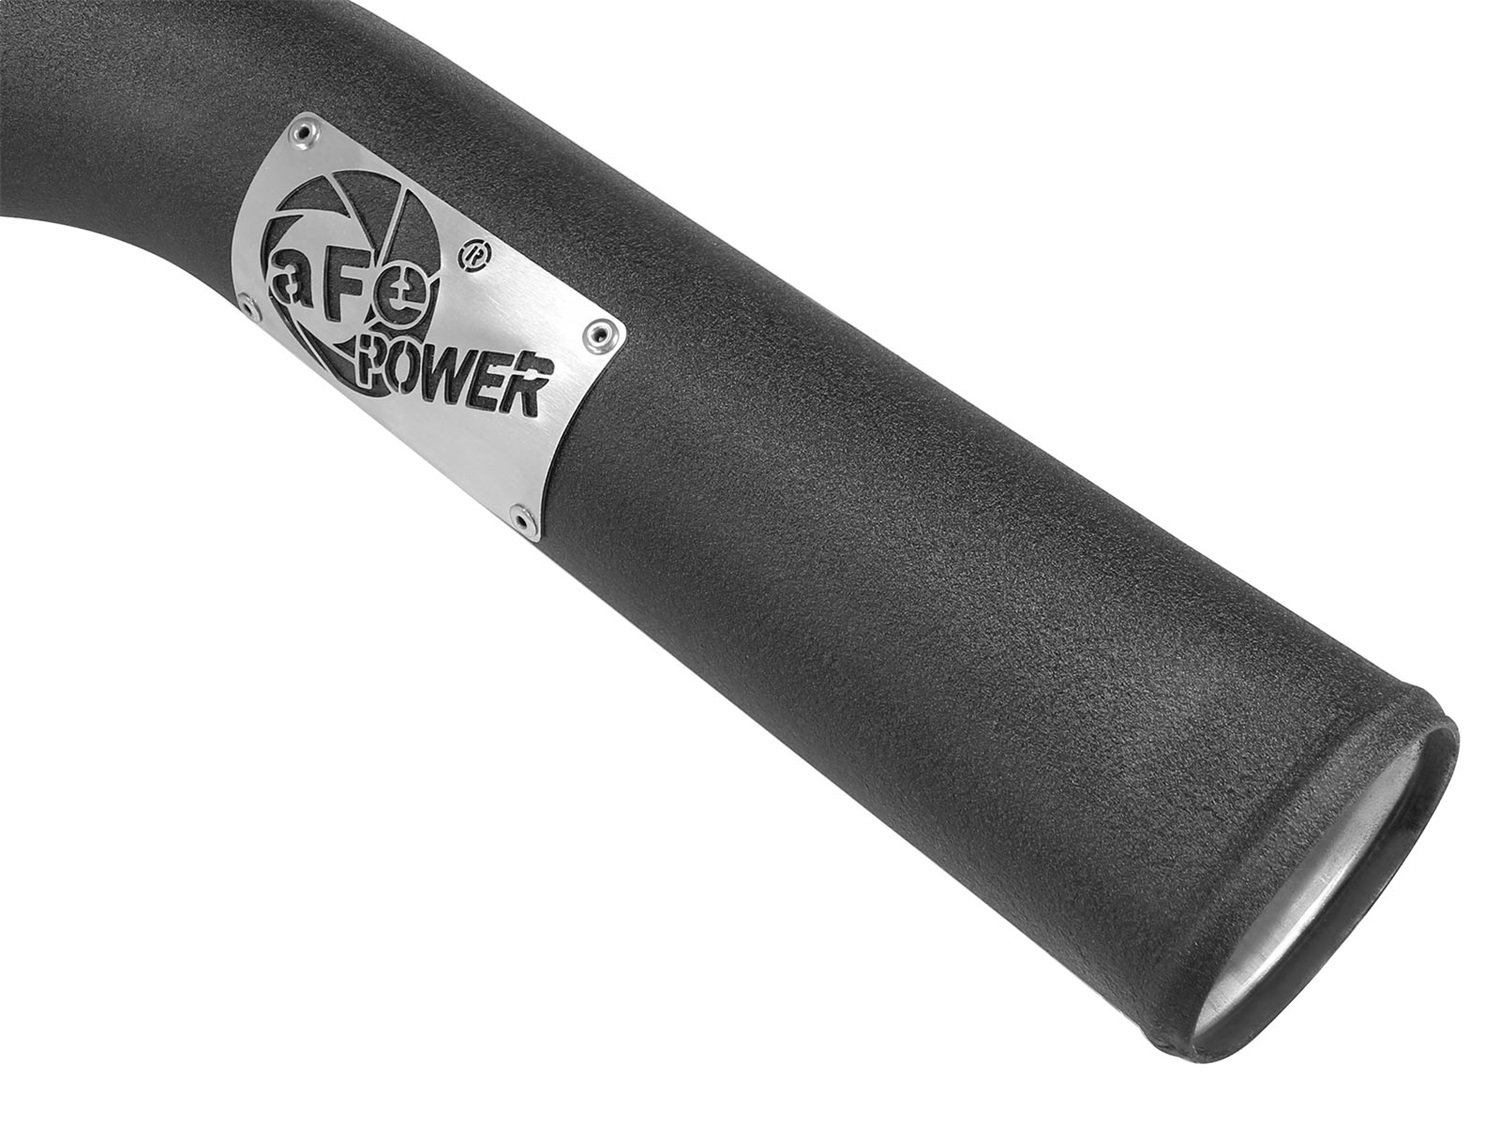 aFe Power Magnum FORCE 51-32572 RAM 1500 EcoDiesel 14-15 V6-3.0L (td) Performance Intake System (Dry, 3-Layer Filter) by aFe (Image #9)